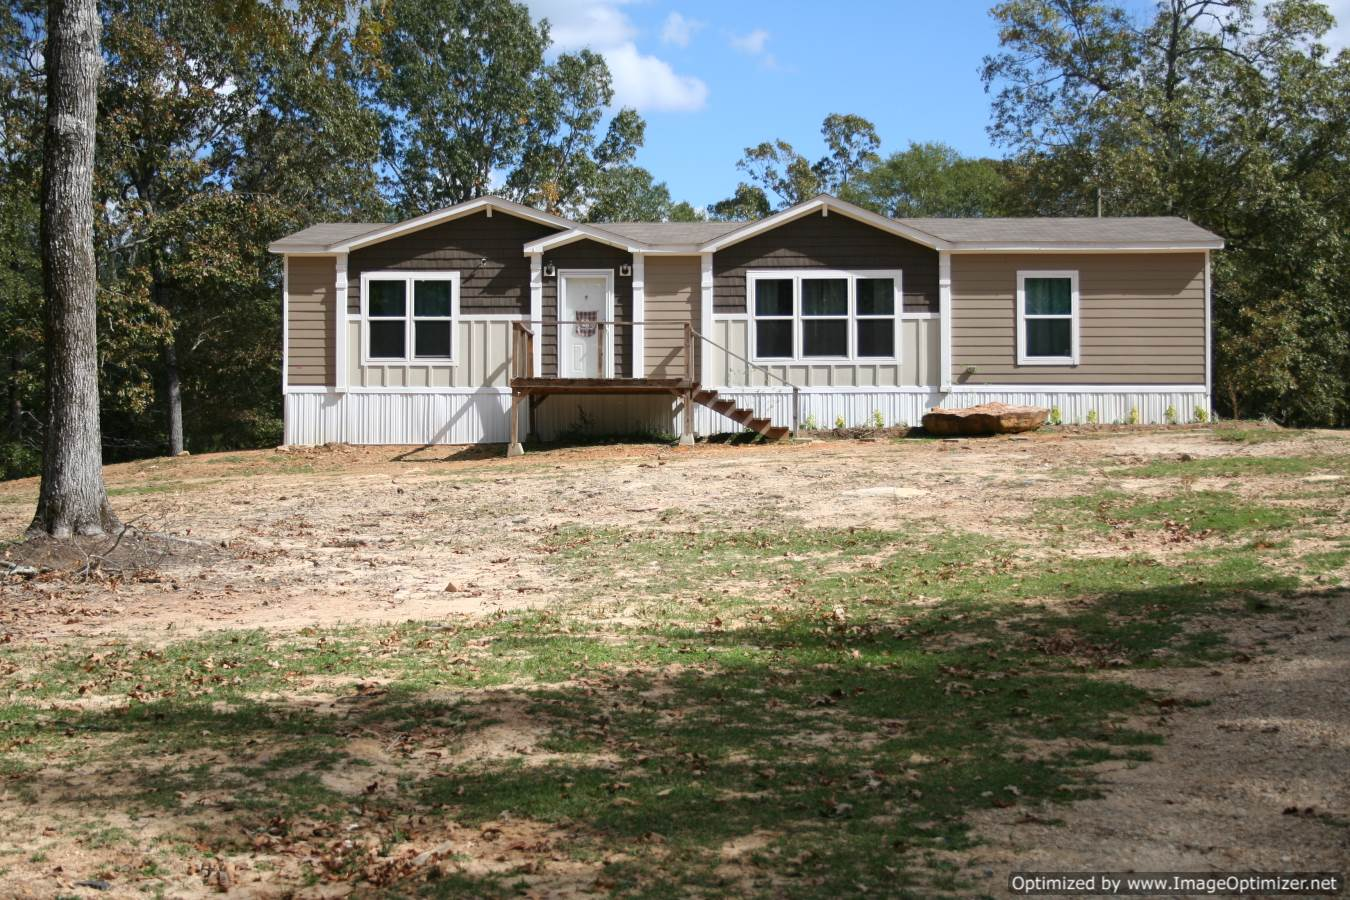 home-and-land-for-sale-in-Rankin-County-MS